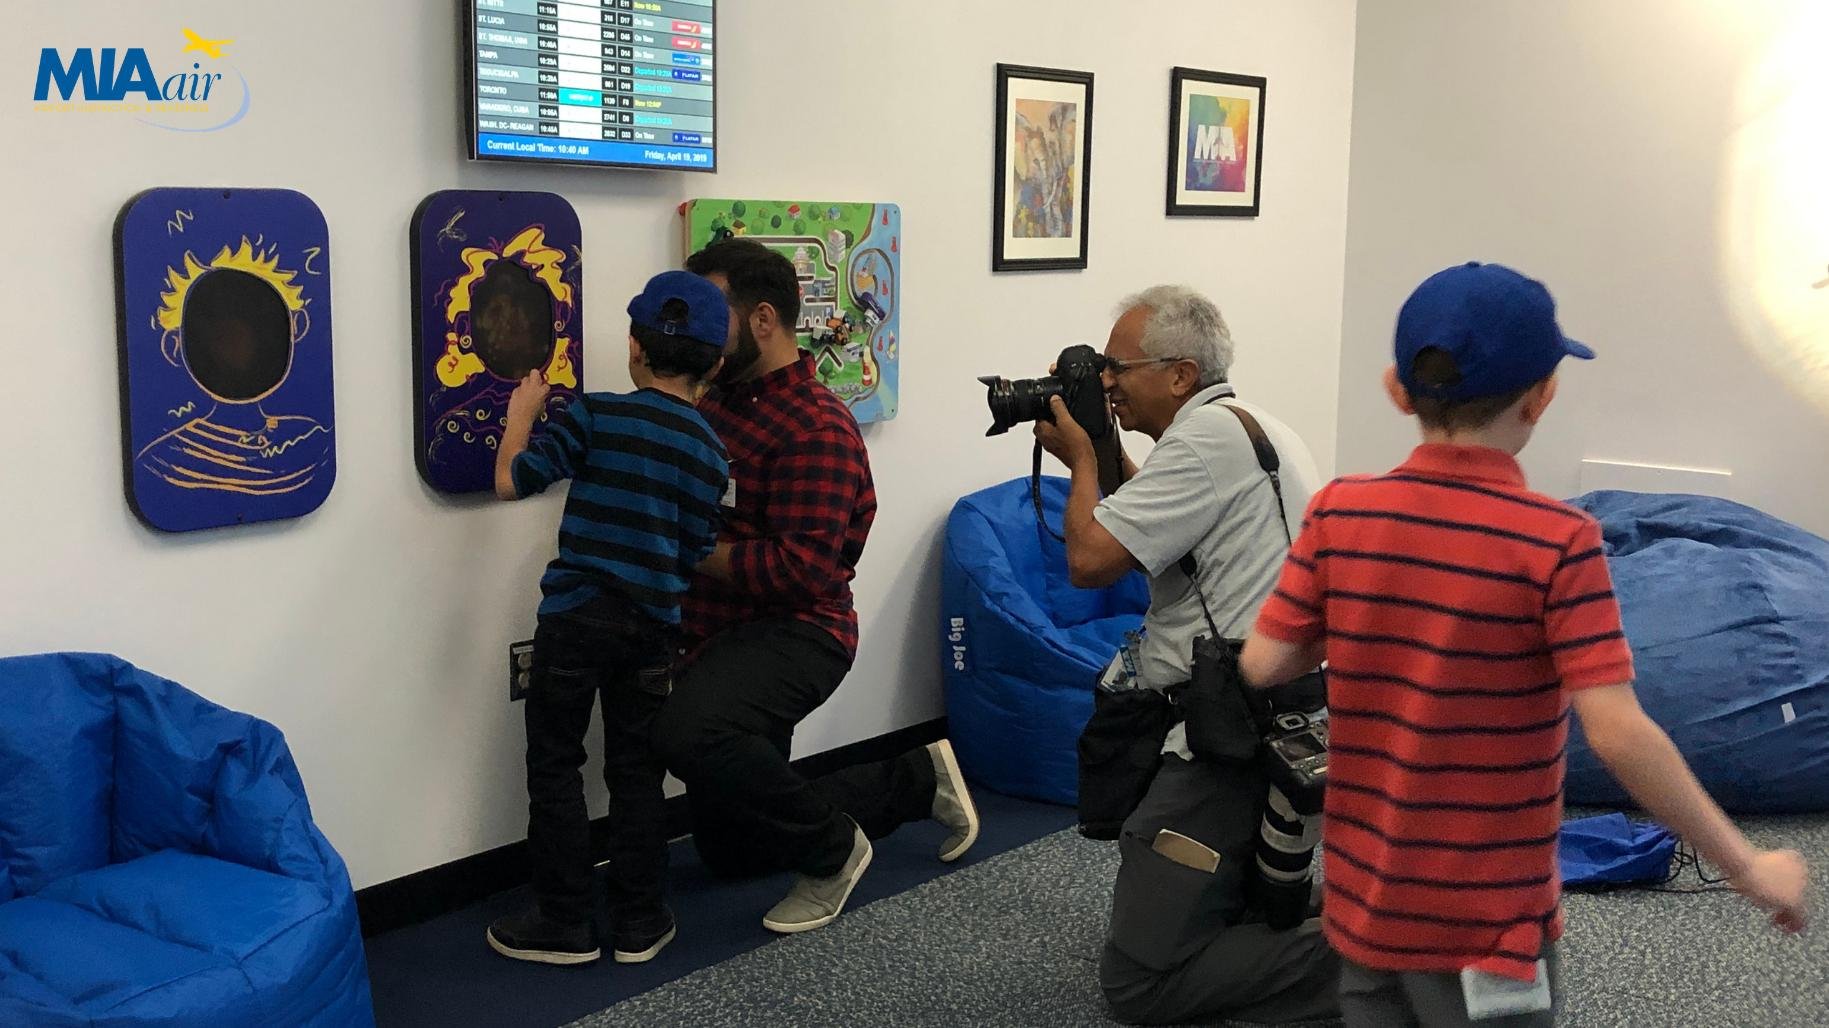 Miami Int'l Airport Opens Its First Multi-Sensory Room For Kids With Autism